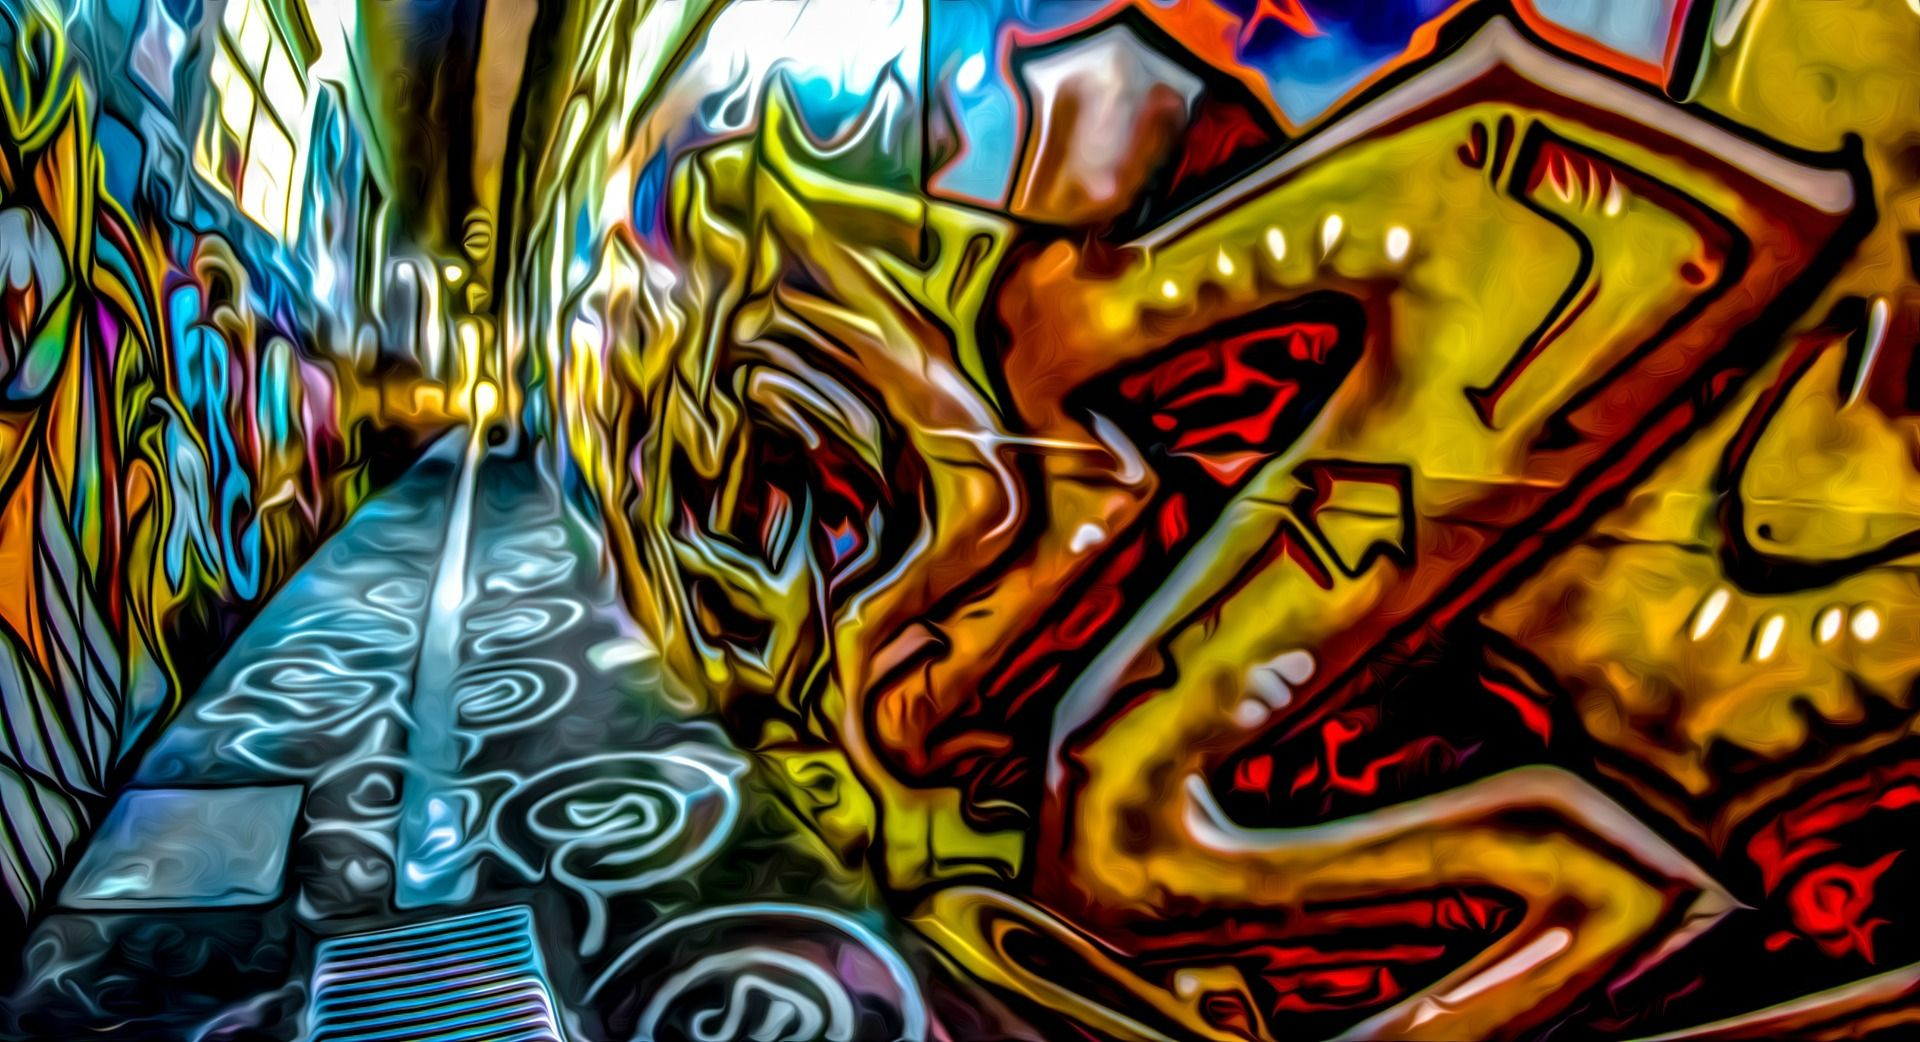 Graffiti art wallpapers high quality resolution for desktop wallpaper 1920 x 1042 px 601 15 kb love spray can on paper how to draw music artist walls music